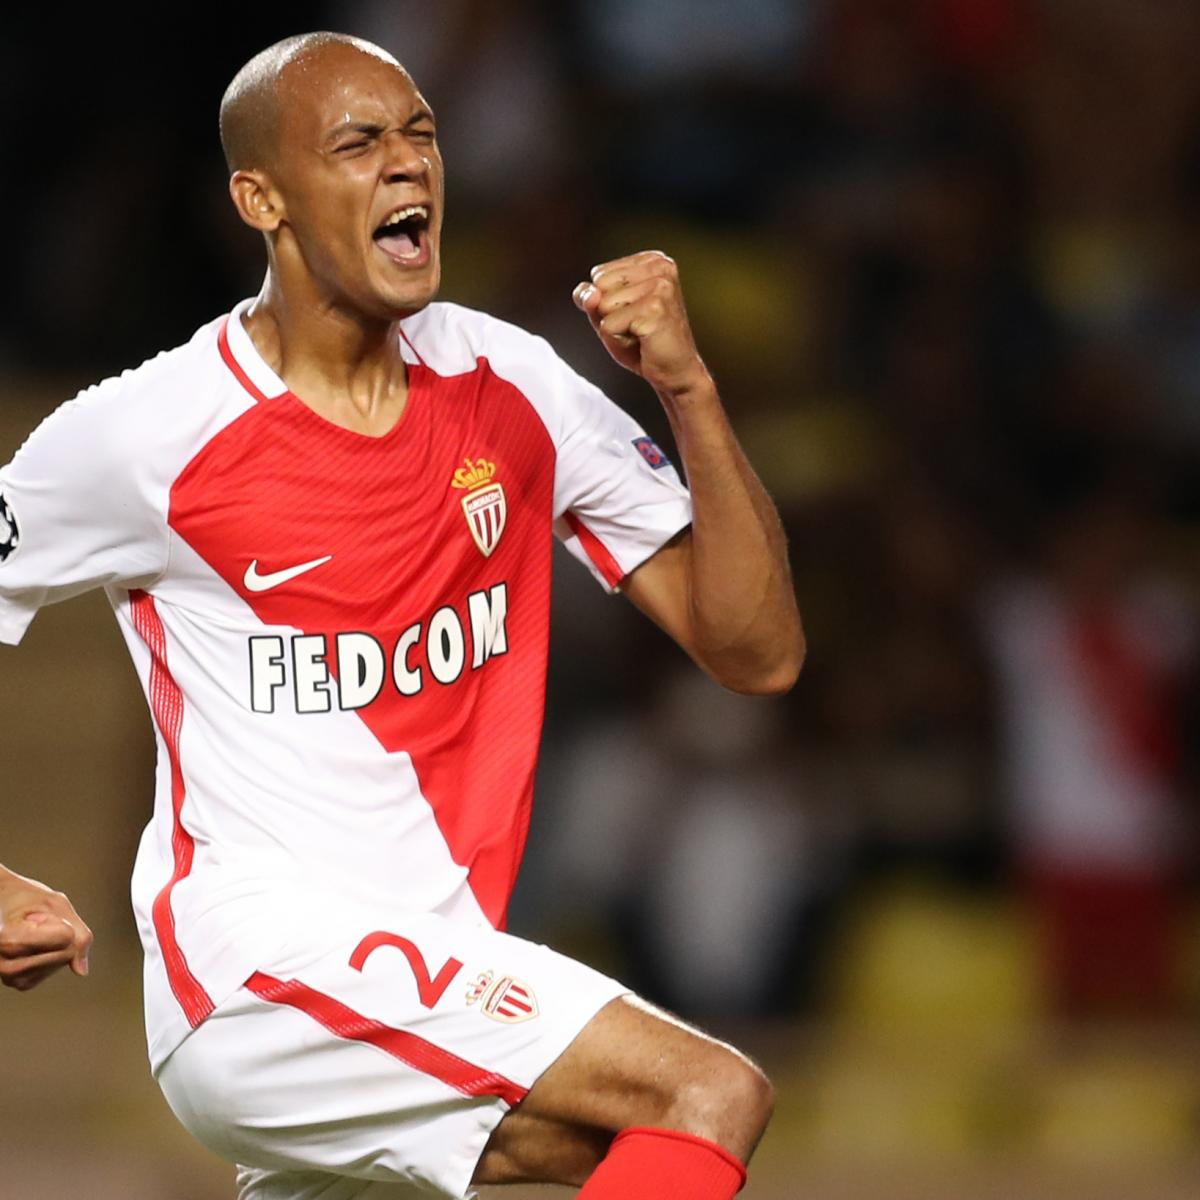 Manchester United Transfer News Latest Rumours On Lucas: Manchester United Transfer News: Fabinho Price Reportedly